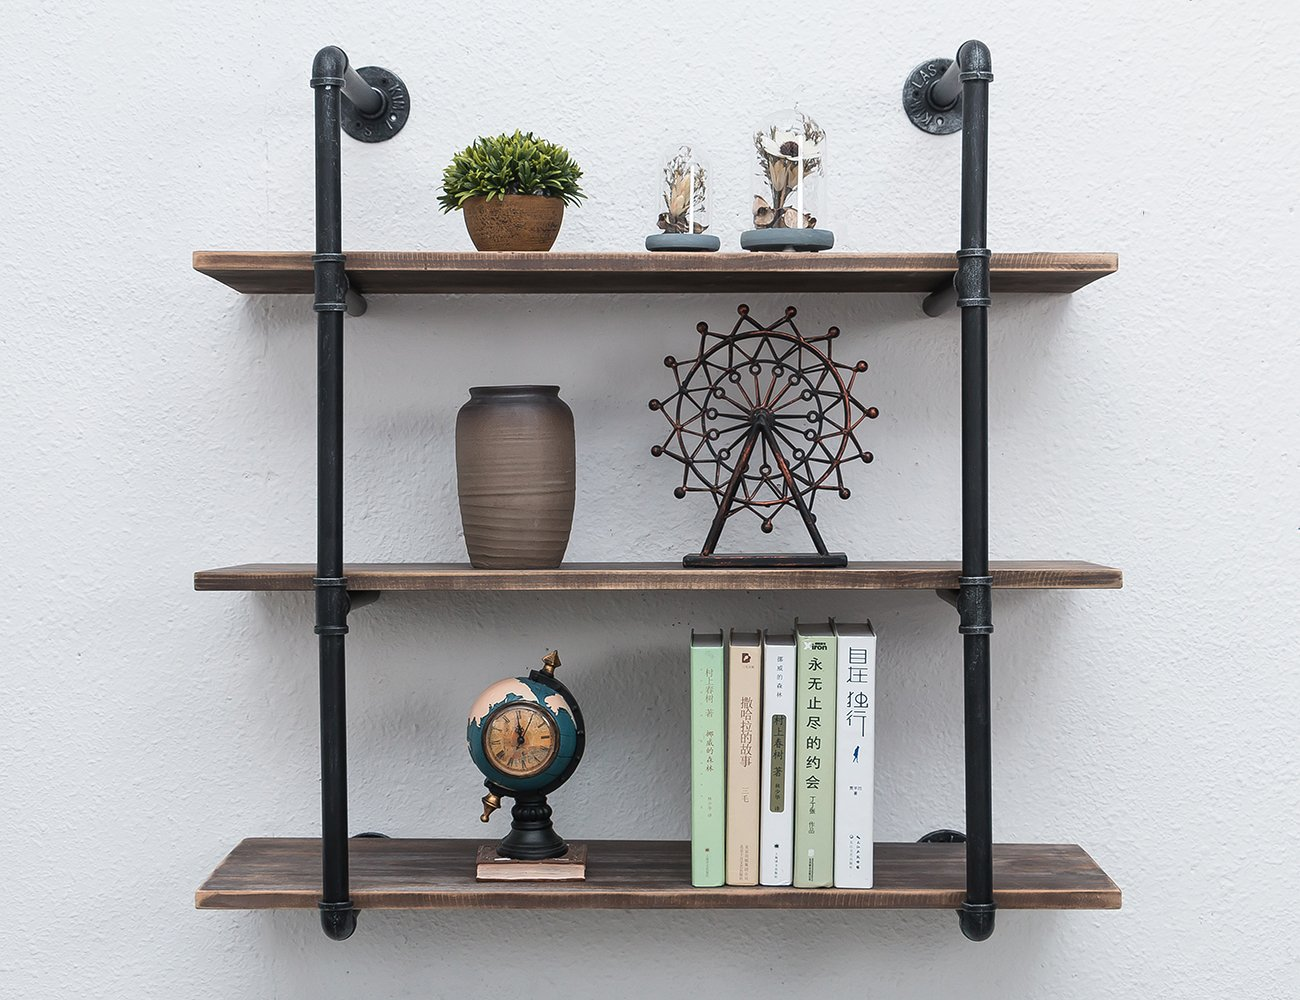 MBQQ Industrial Iron Pipe Shelf DIY with Wood 36.2in Retro Storage Book Shelves Wall Mounted Shelving Hung Bracket 3-Shelf Organizer 4